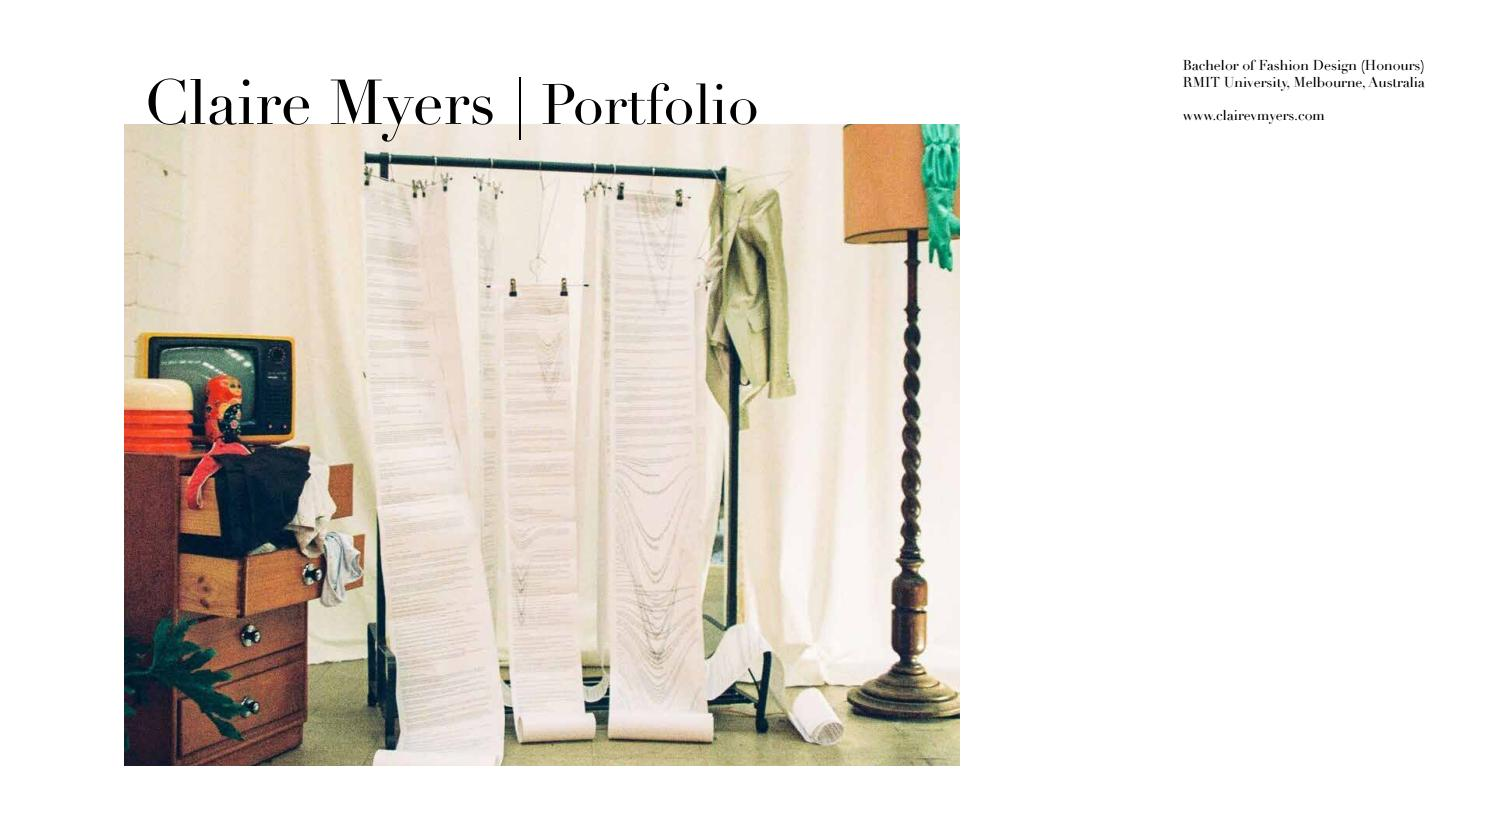 Claire Myers Fashion Design Portfolio By Clairevmyers Issuu